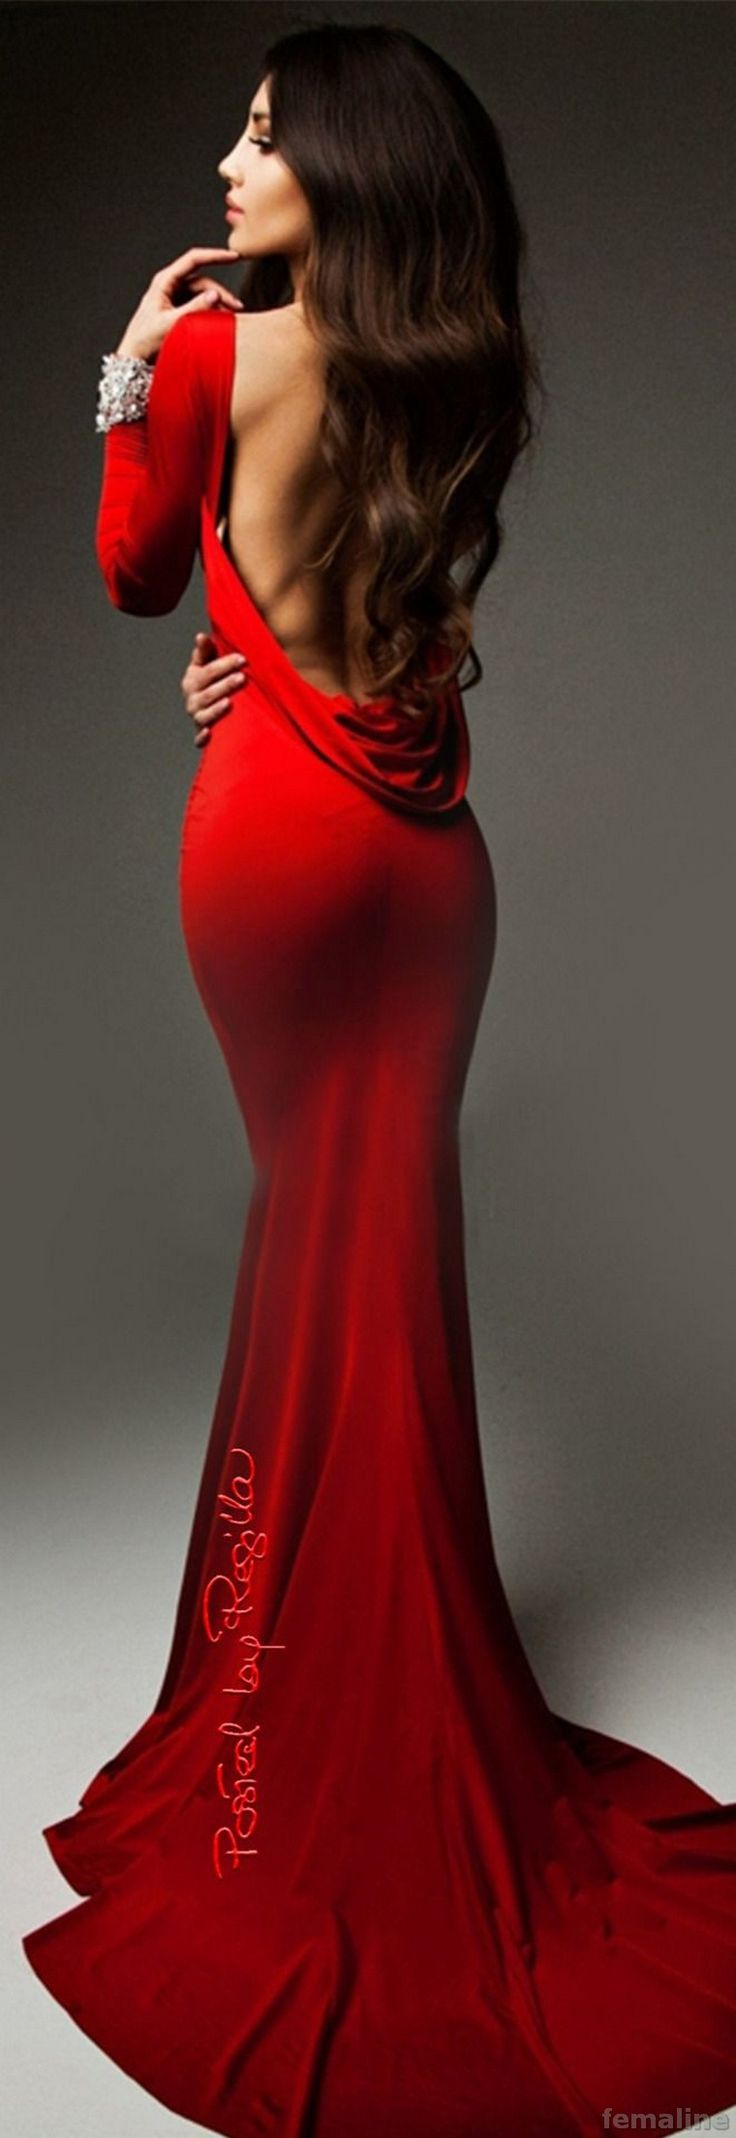 best 25+ red backless dress ideas on pinterest | messy updo, white